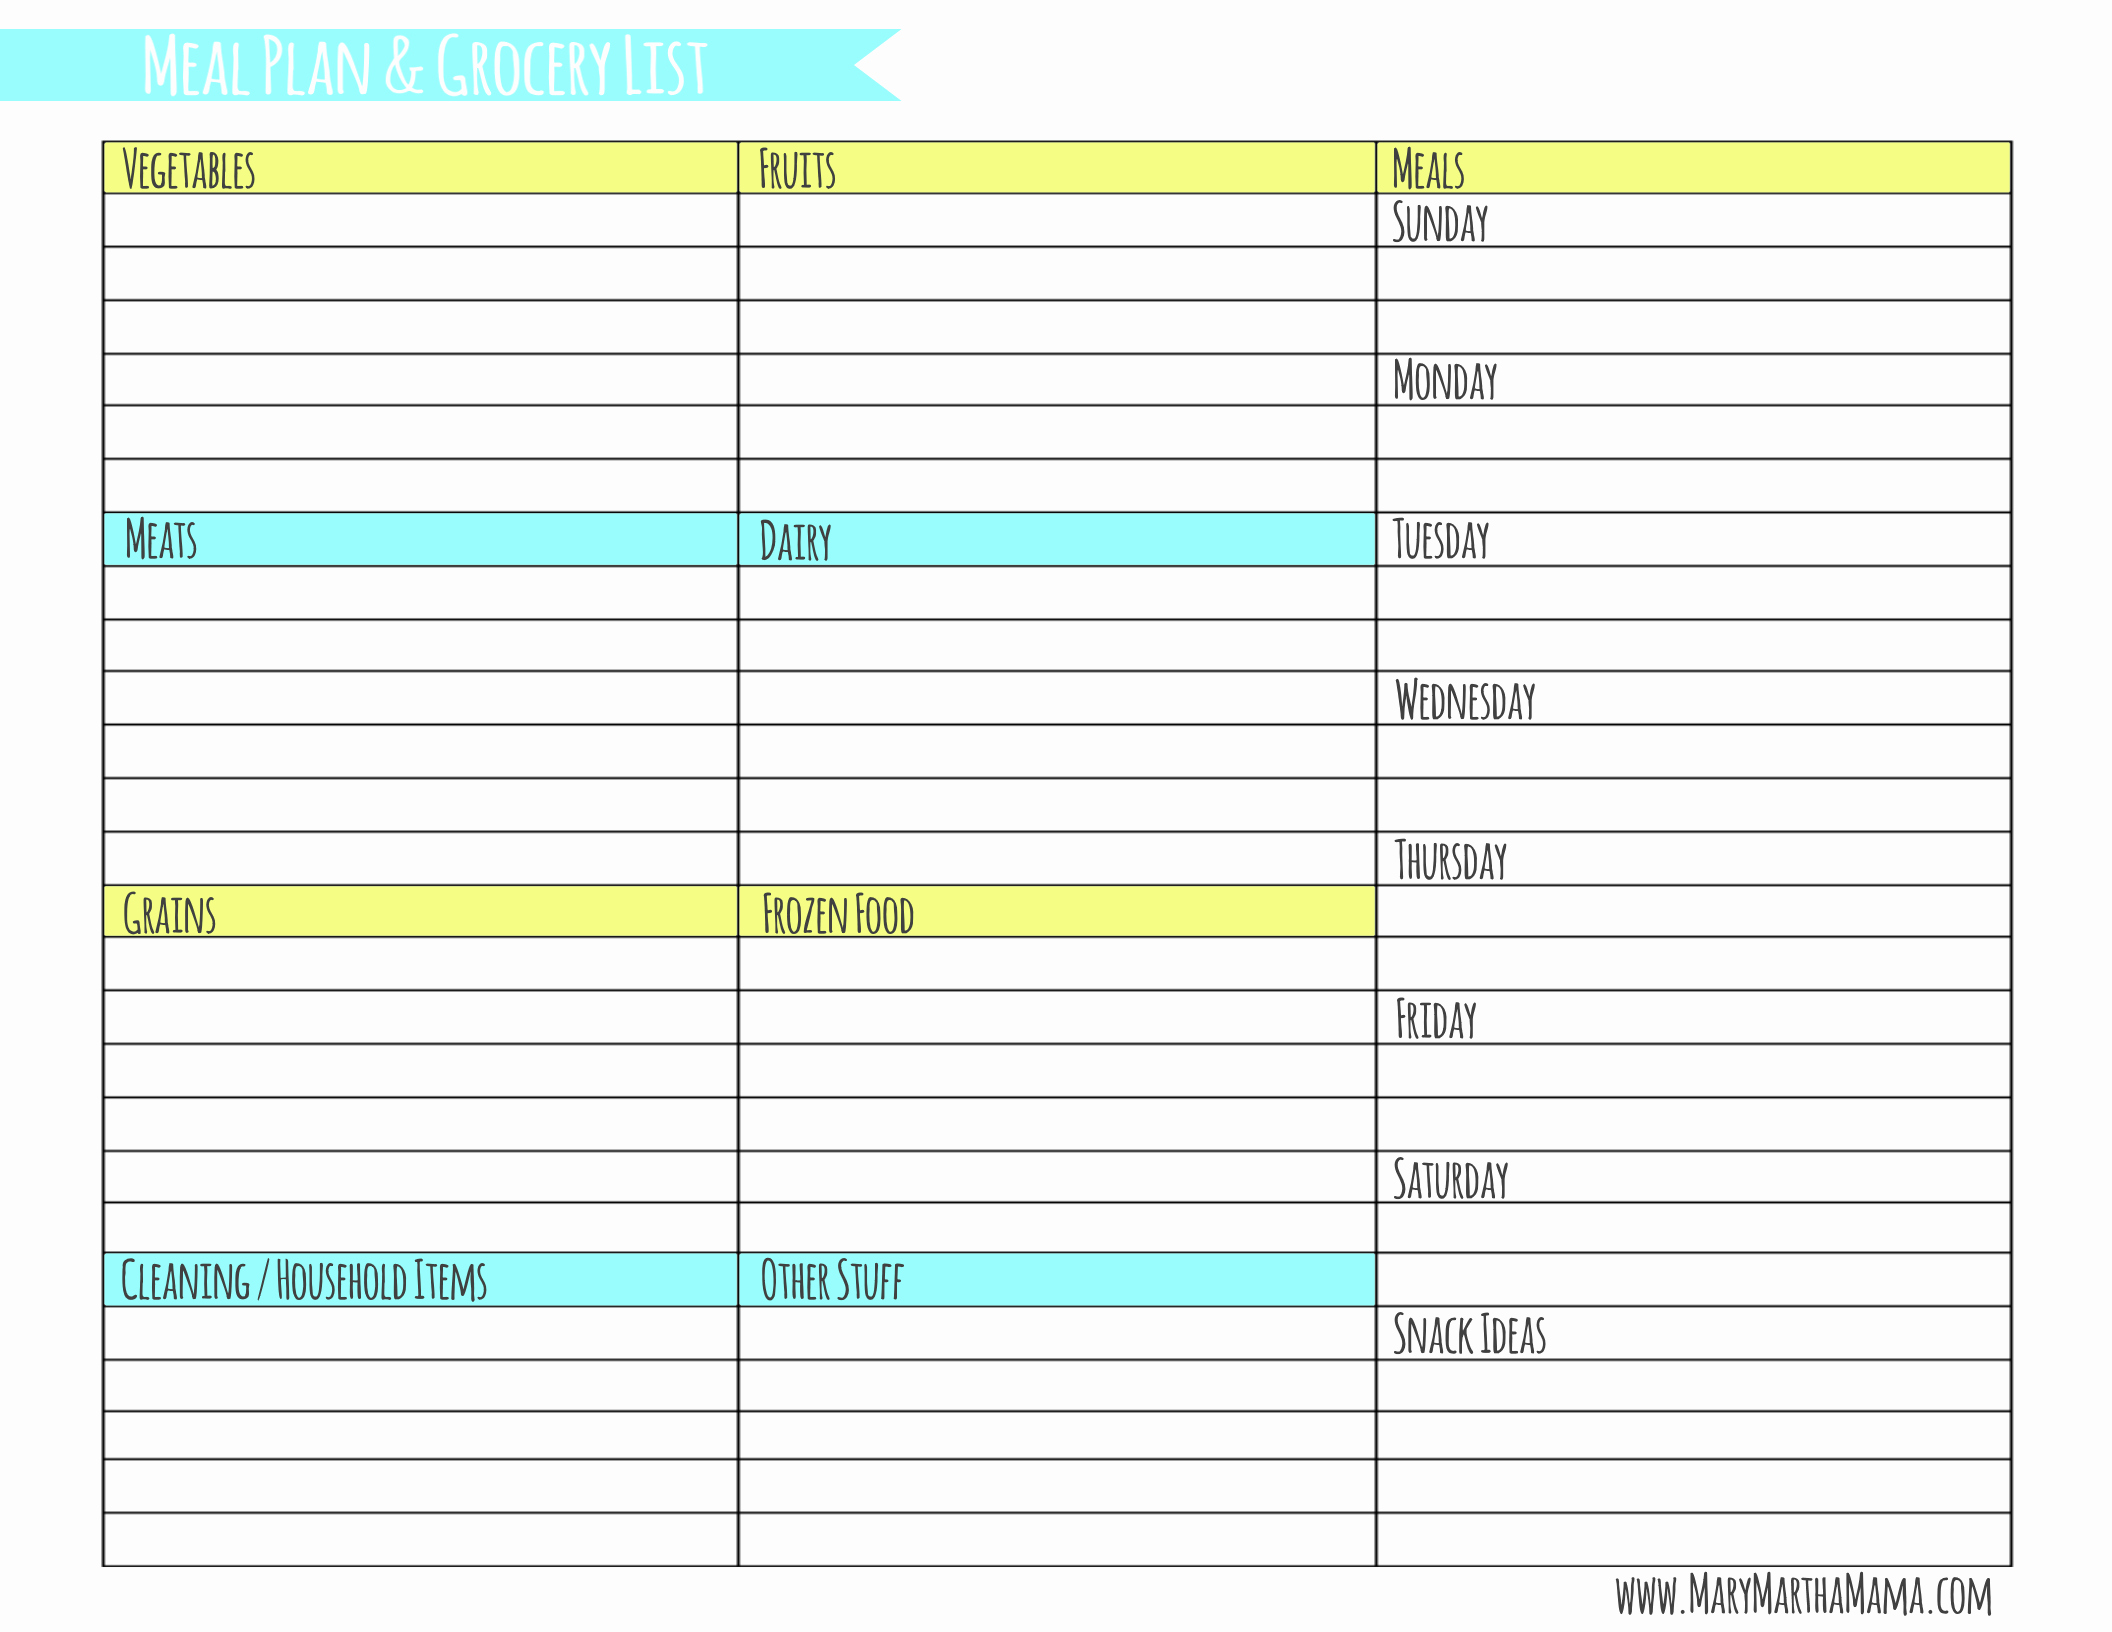 Weekly Meal Plan Template Word Awesome Weekly Meal Planner Template with Grocery List – Mary